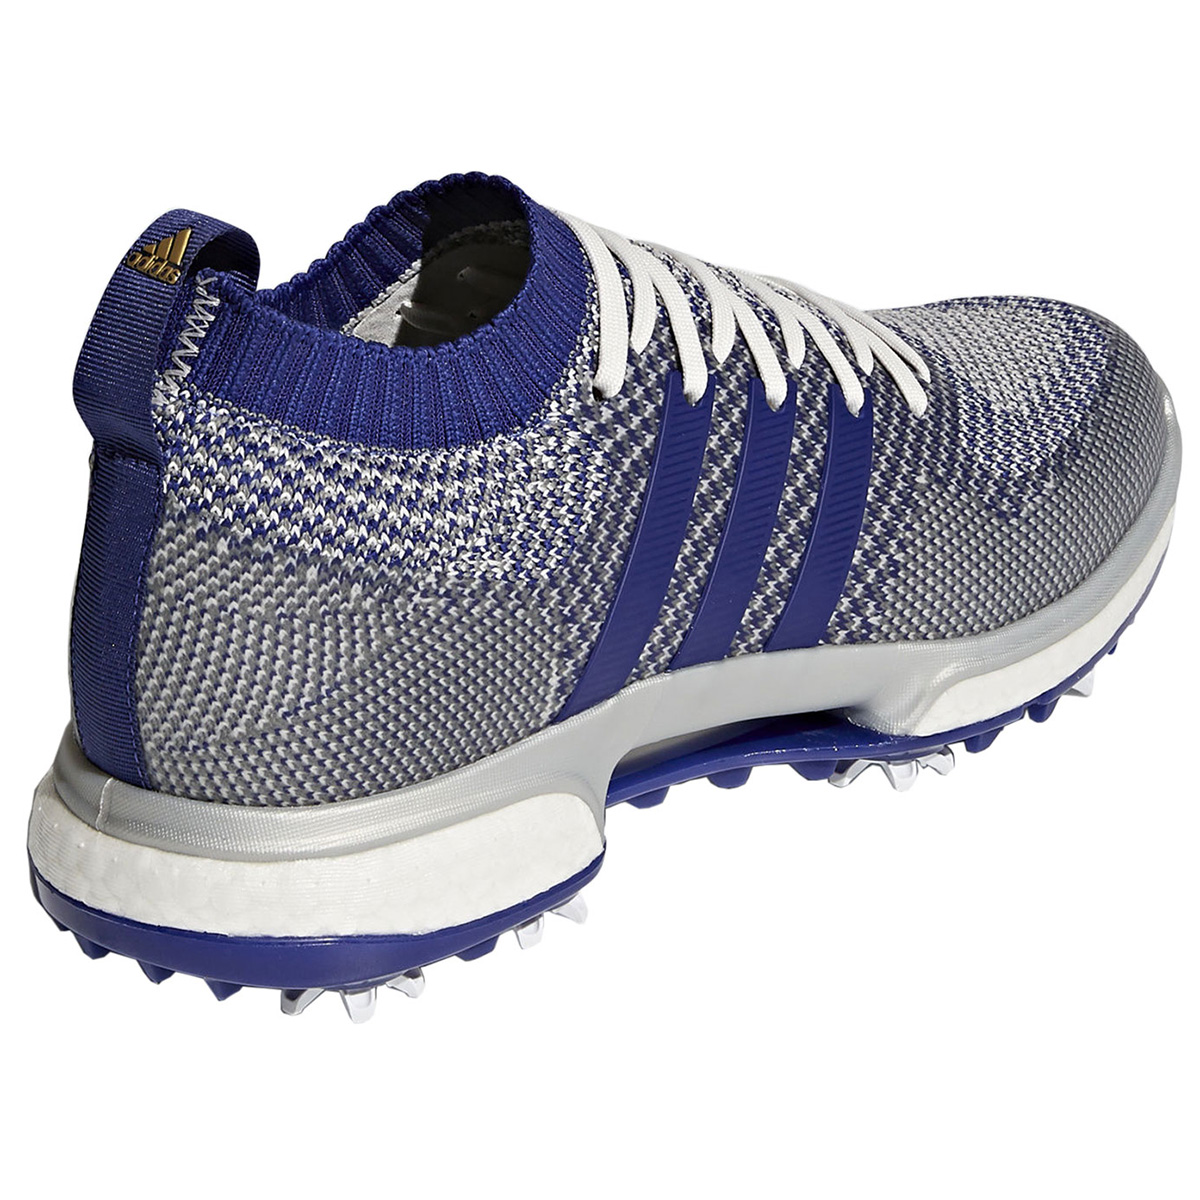 Adidas Golf Tour360 Knit Shoes From American Golf